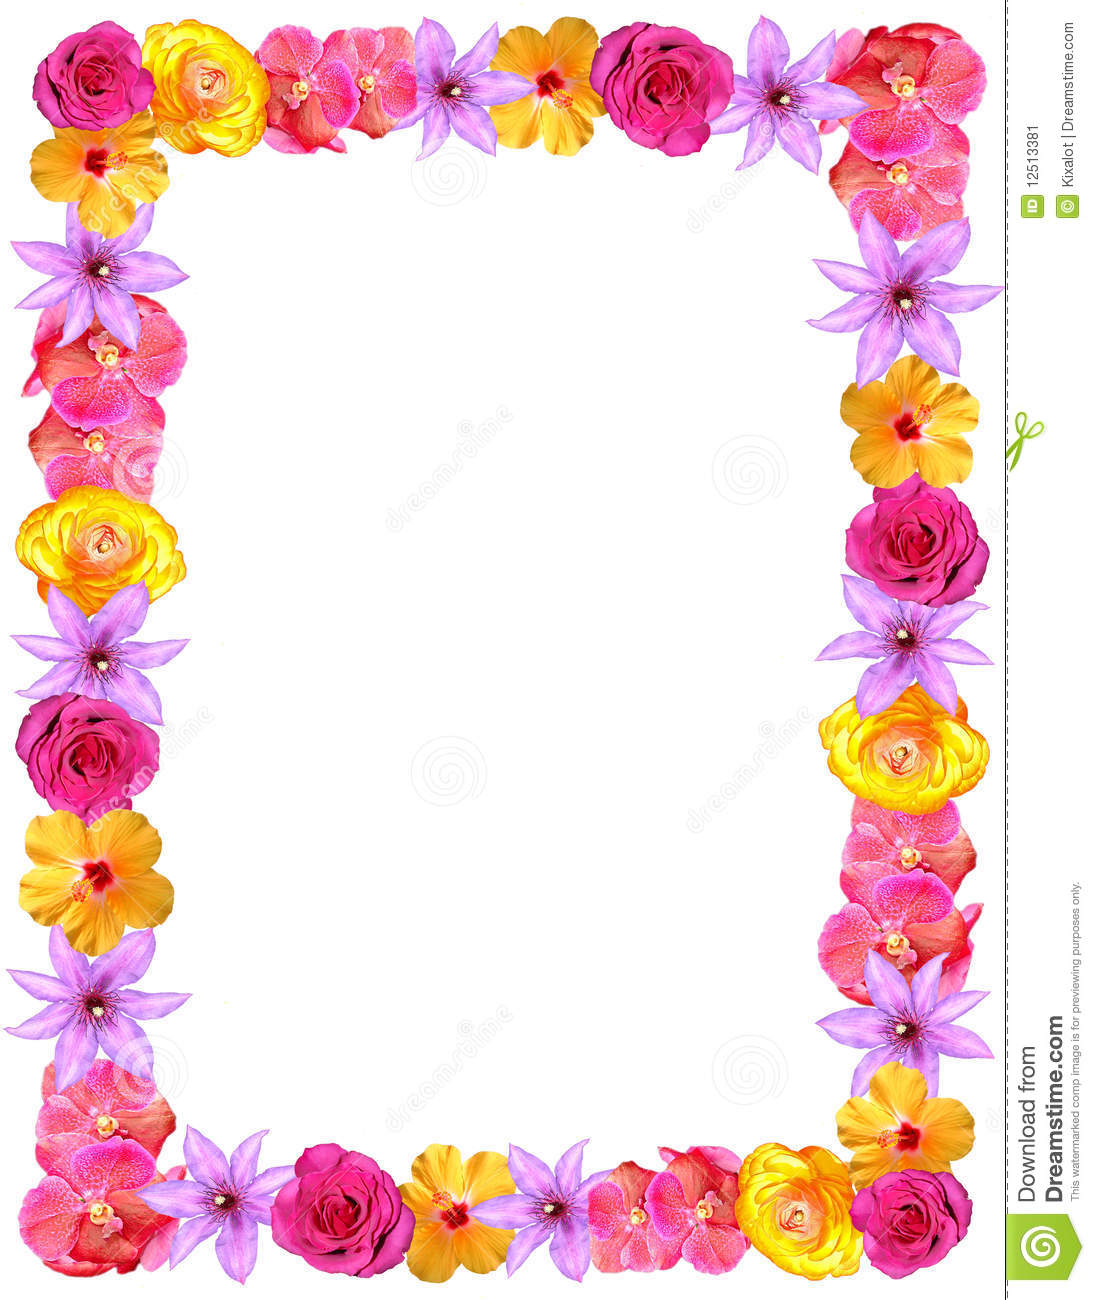 similiar mother s day borders and frames keywords